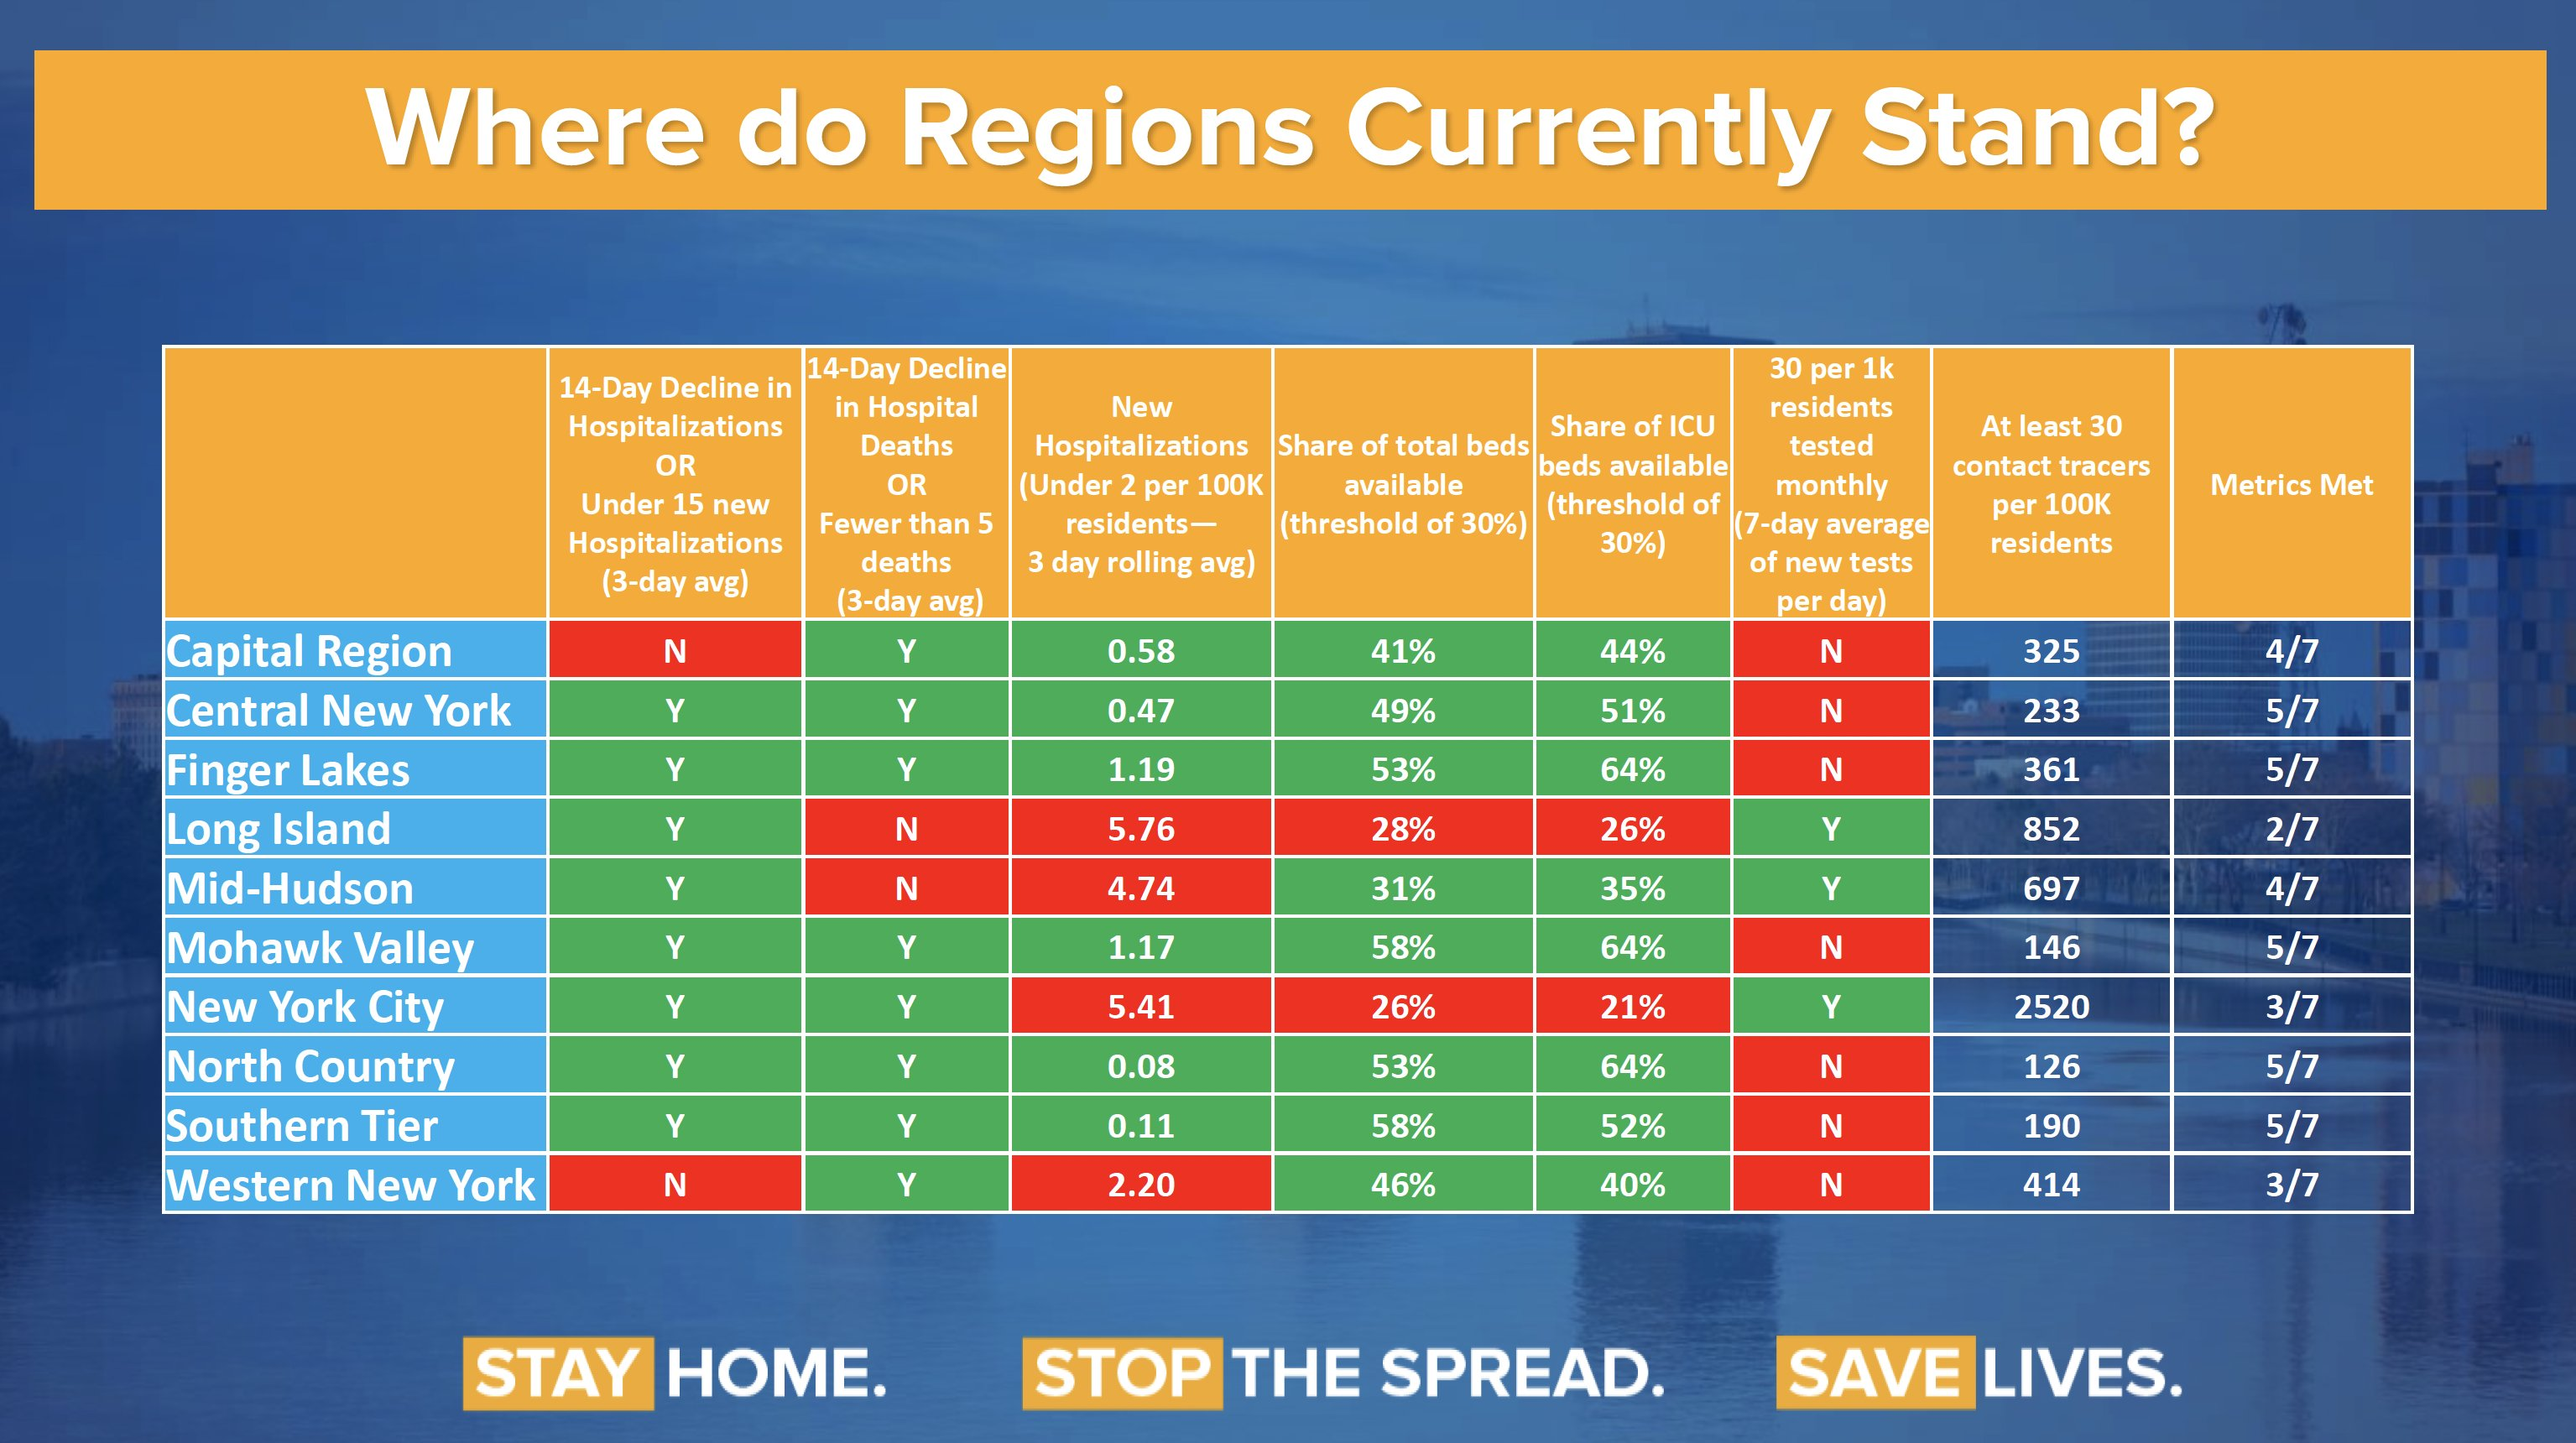 where do regions stand chart